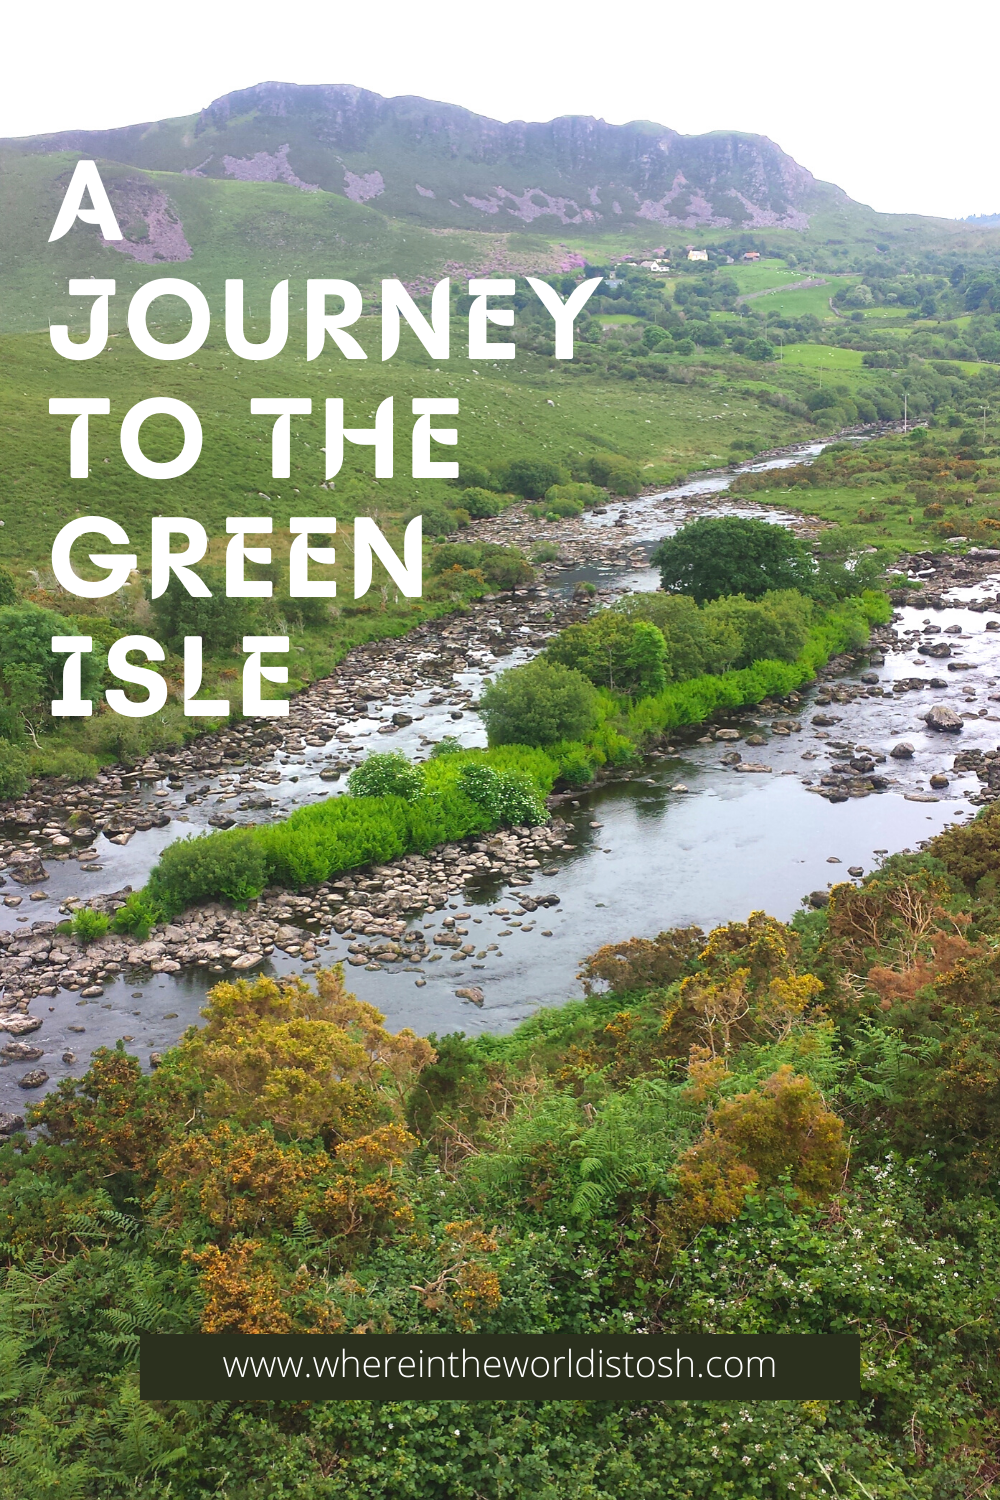 Journey To The Green Isle